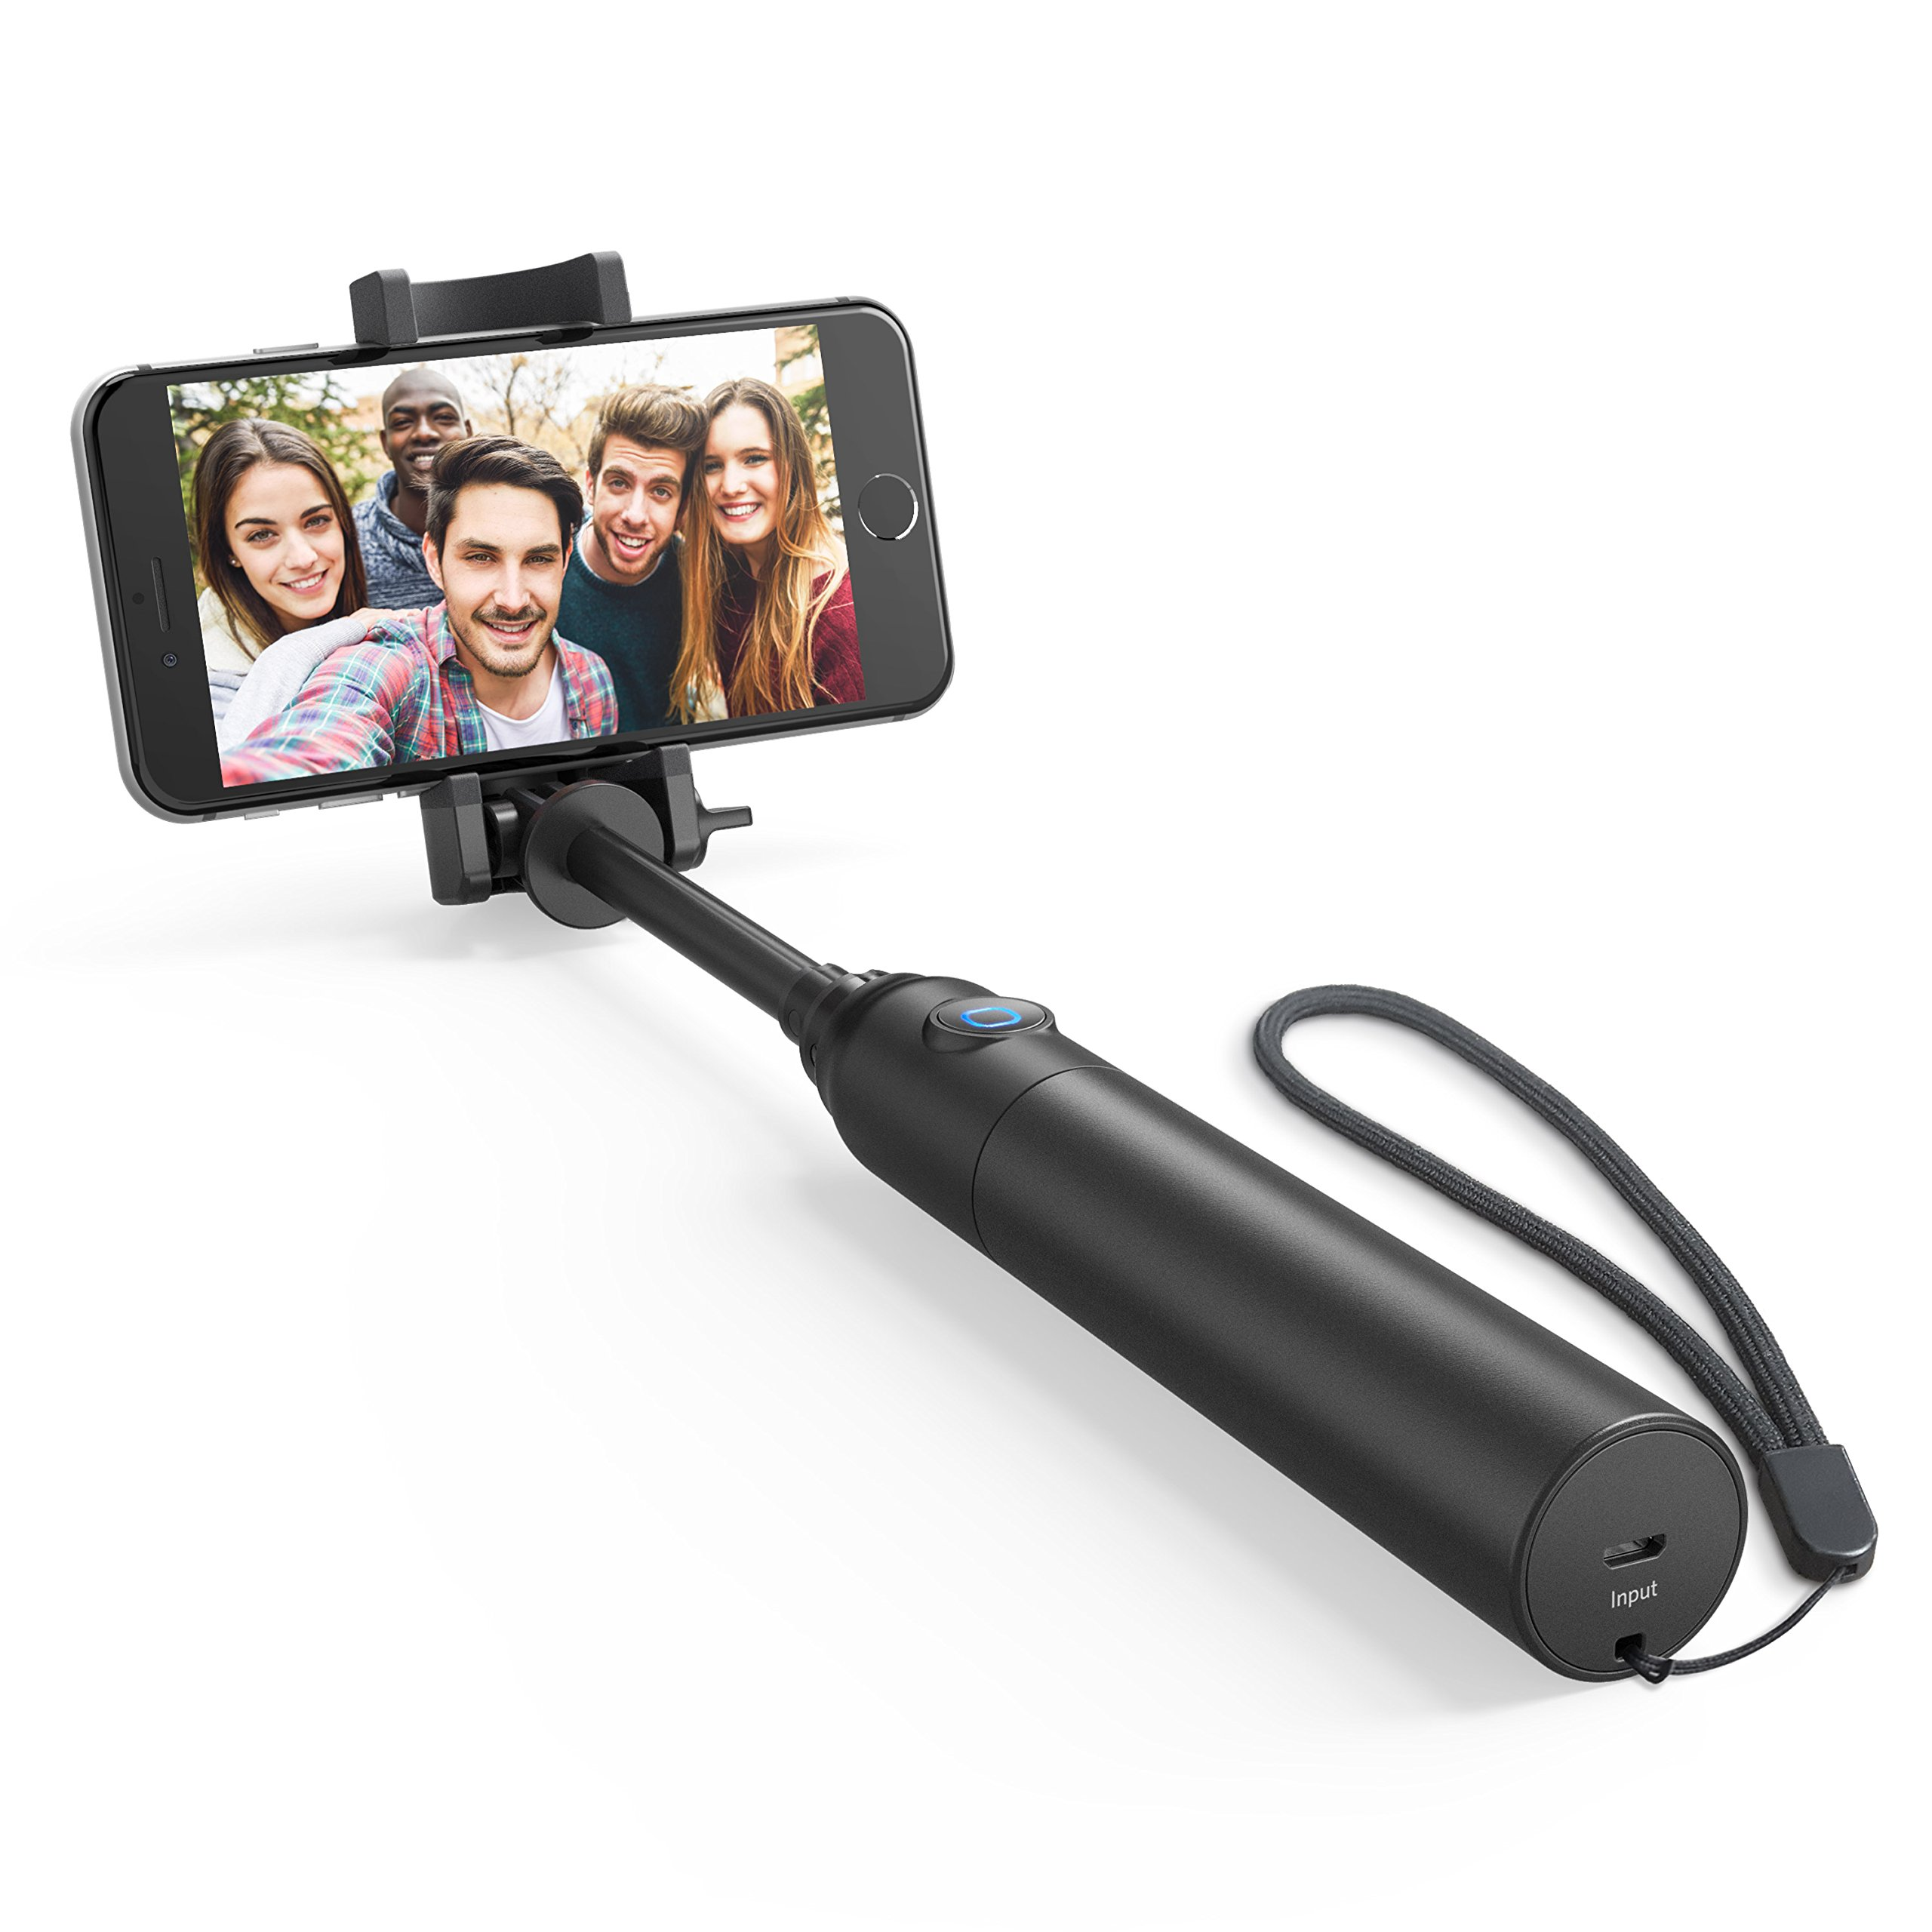 Selfie Stick, Anker Bluetooth Highly-Extendable and Compact Handheld Monopod with 20-Hour Battery Life for iPhone X/8/8 Plus/7/7 Plus/Se/6s/6/6 Plus, Galaxy S8/S7/S6/Edge, LG G5, Pixel 2 and More by Anker (Image #1)